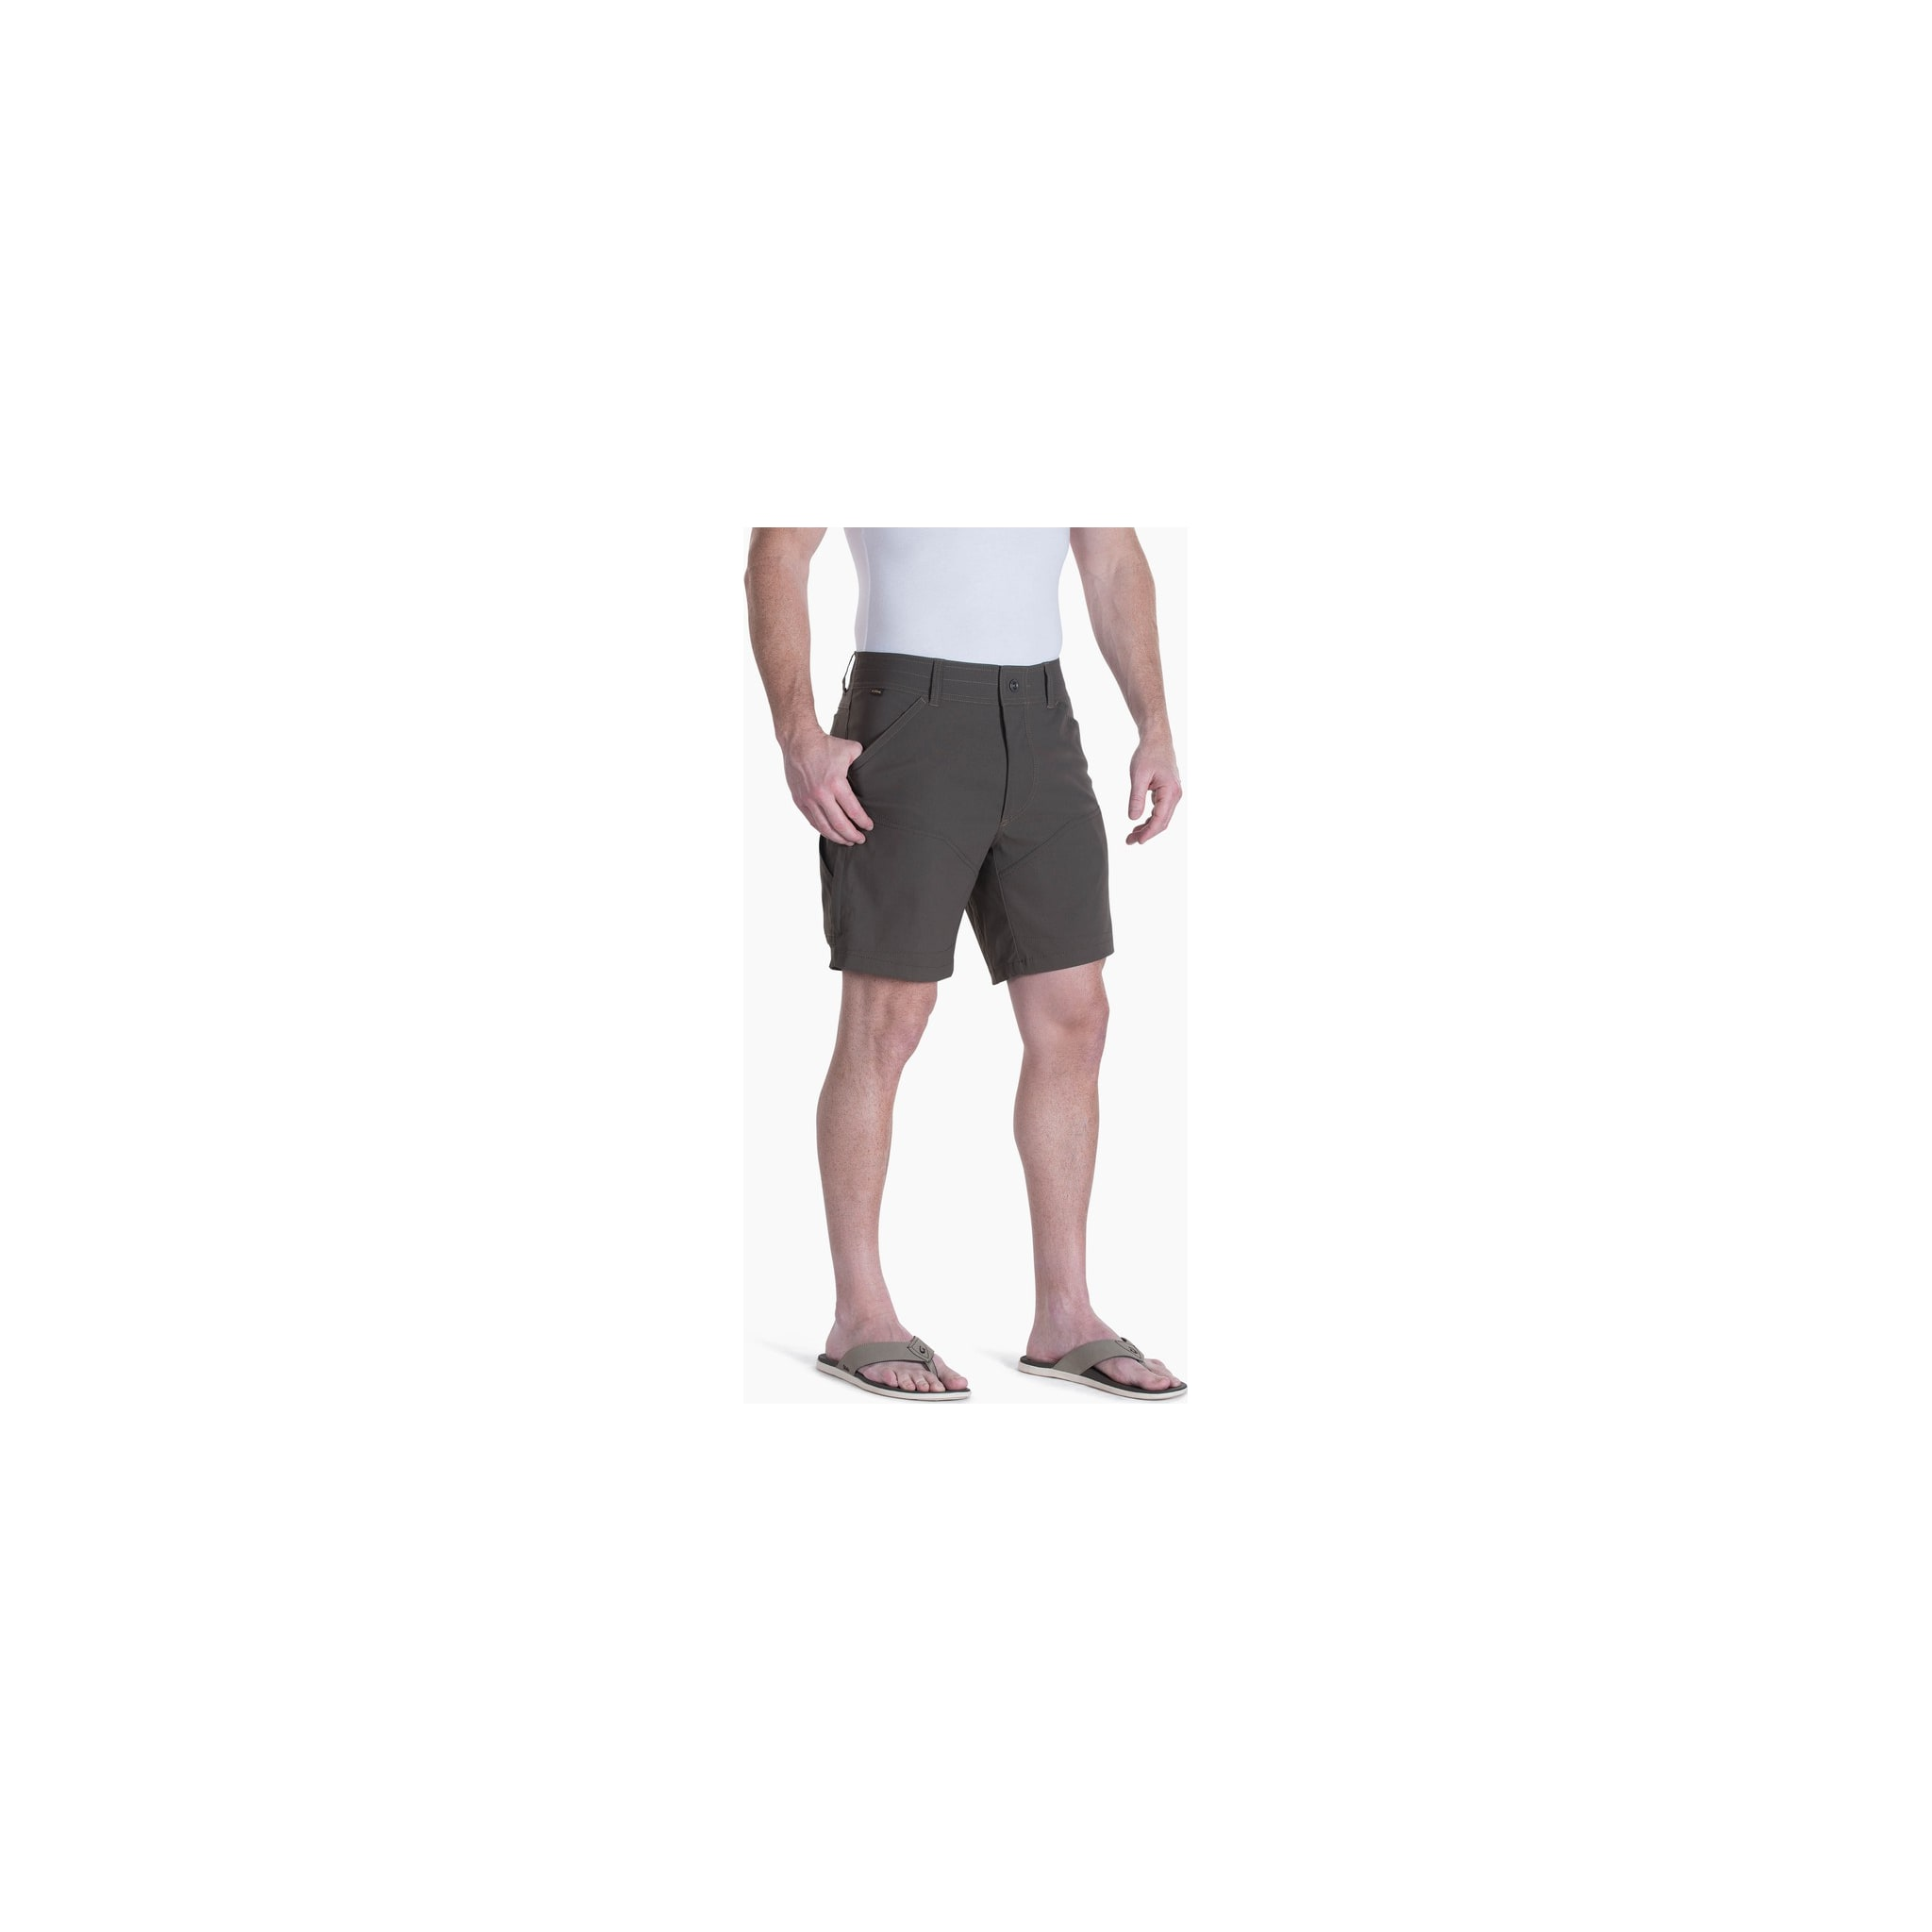 Lett og supersmooth klatreshorts